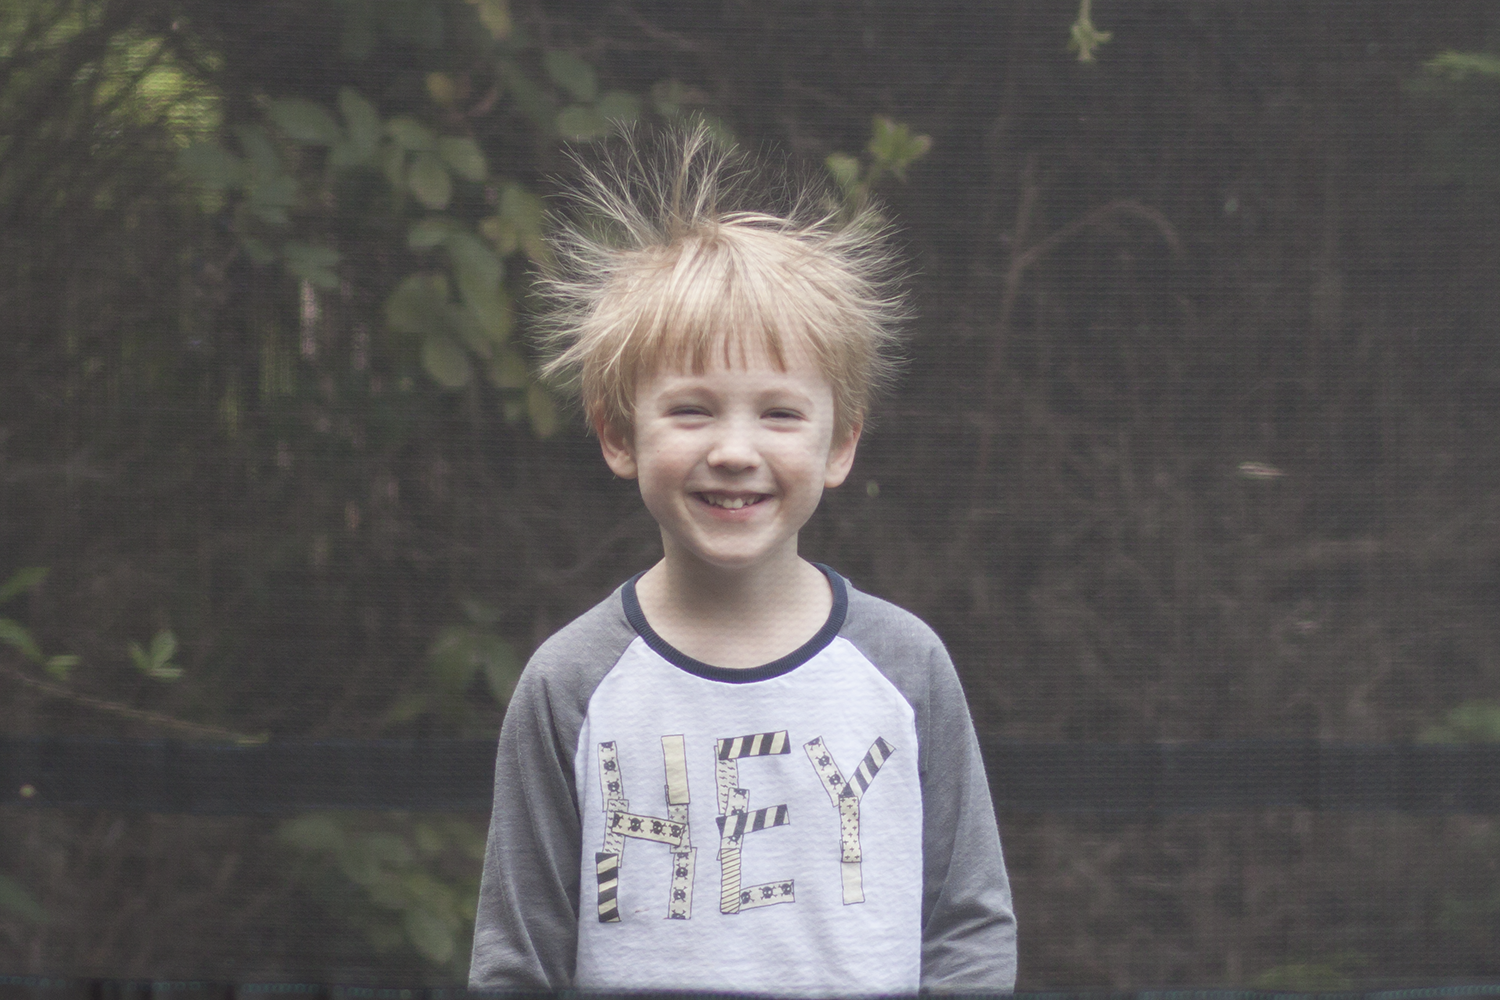 Gabe with his hair sticking up on the trampoline